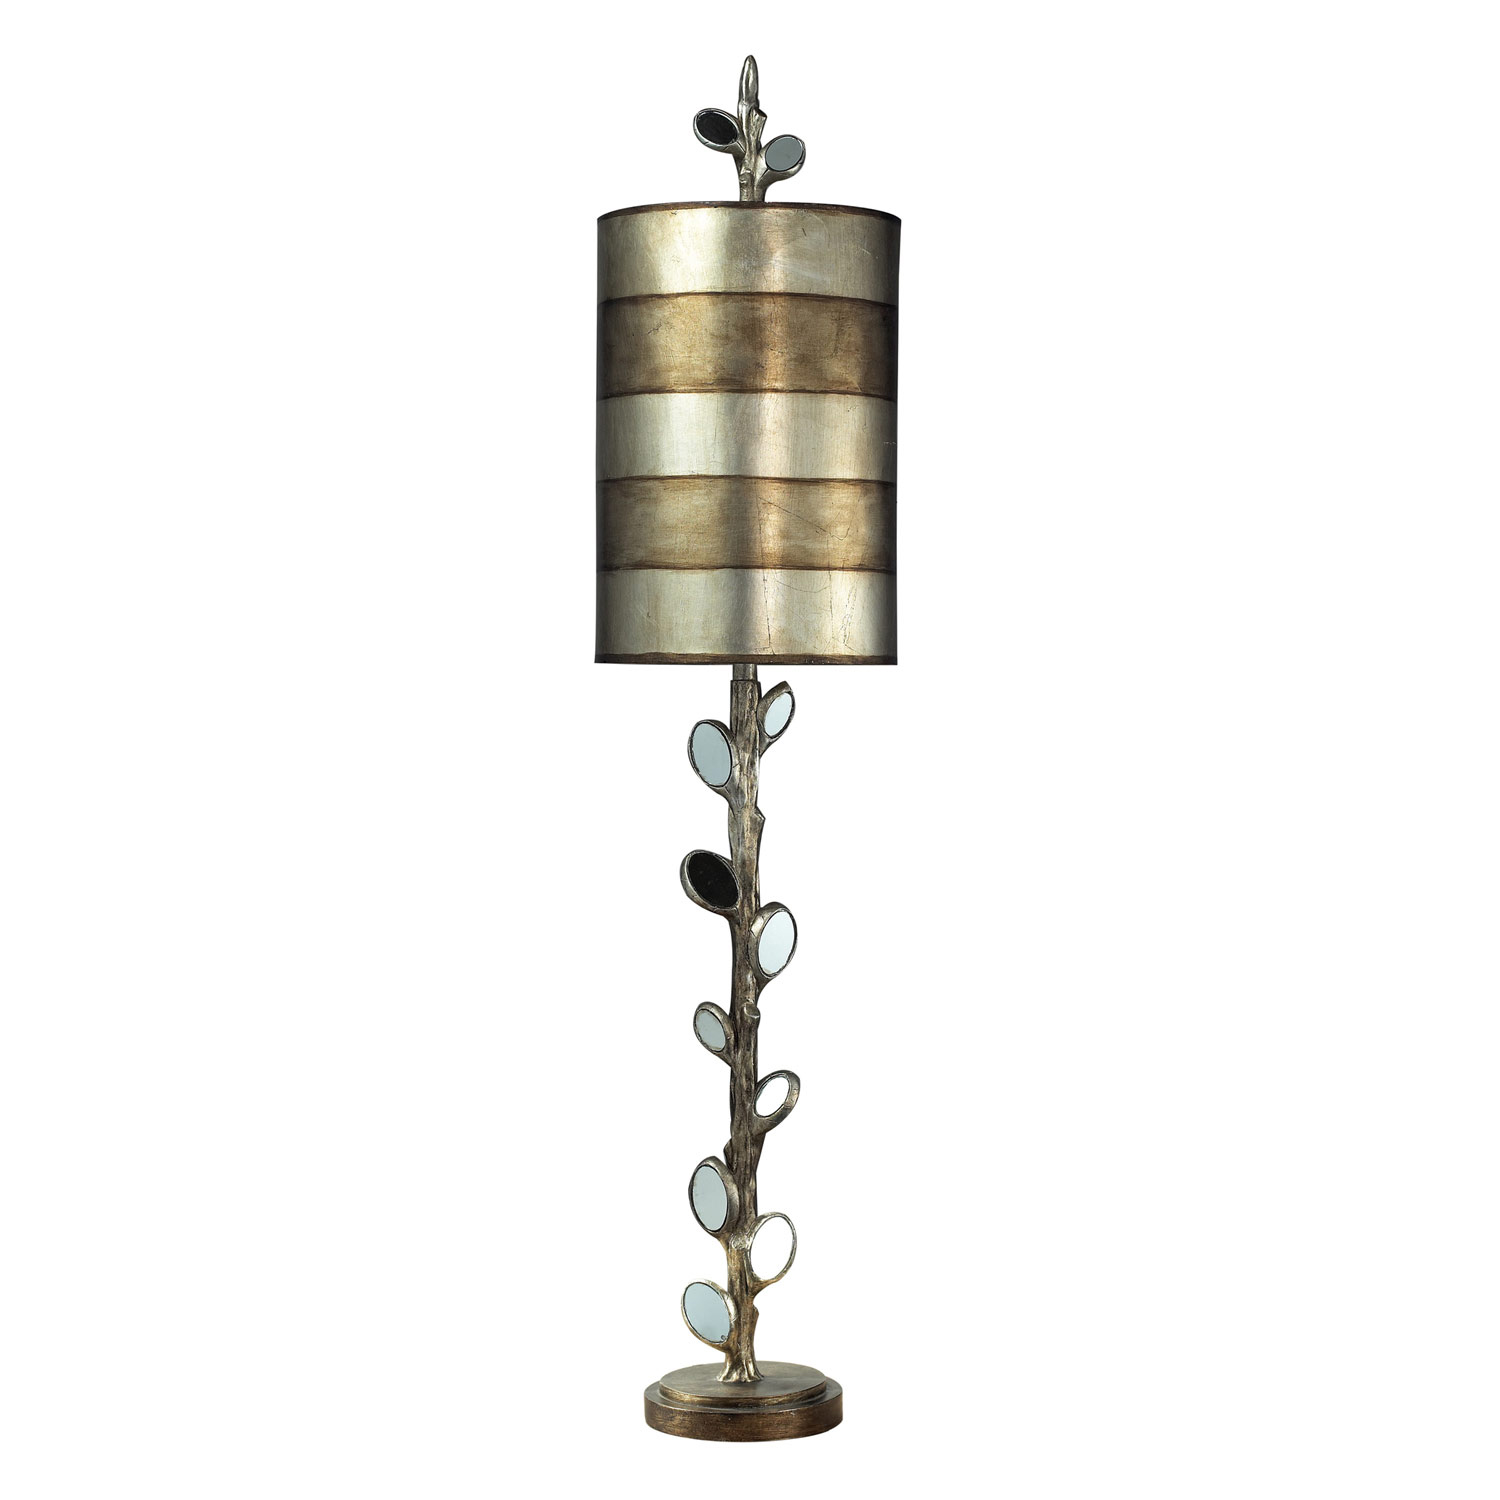 Elk Lighting 93-9111 Amherst Table Lamp - Mirror and Antique Silver